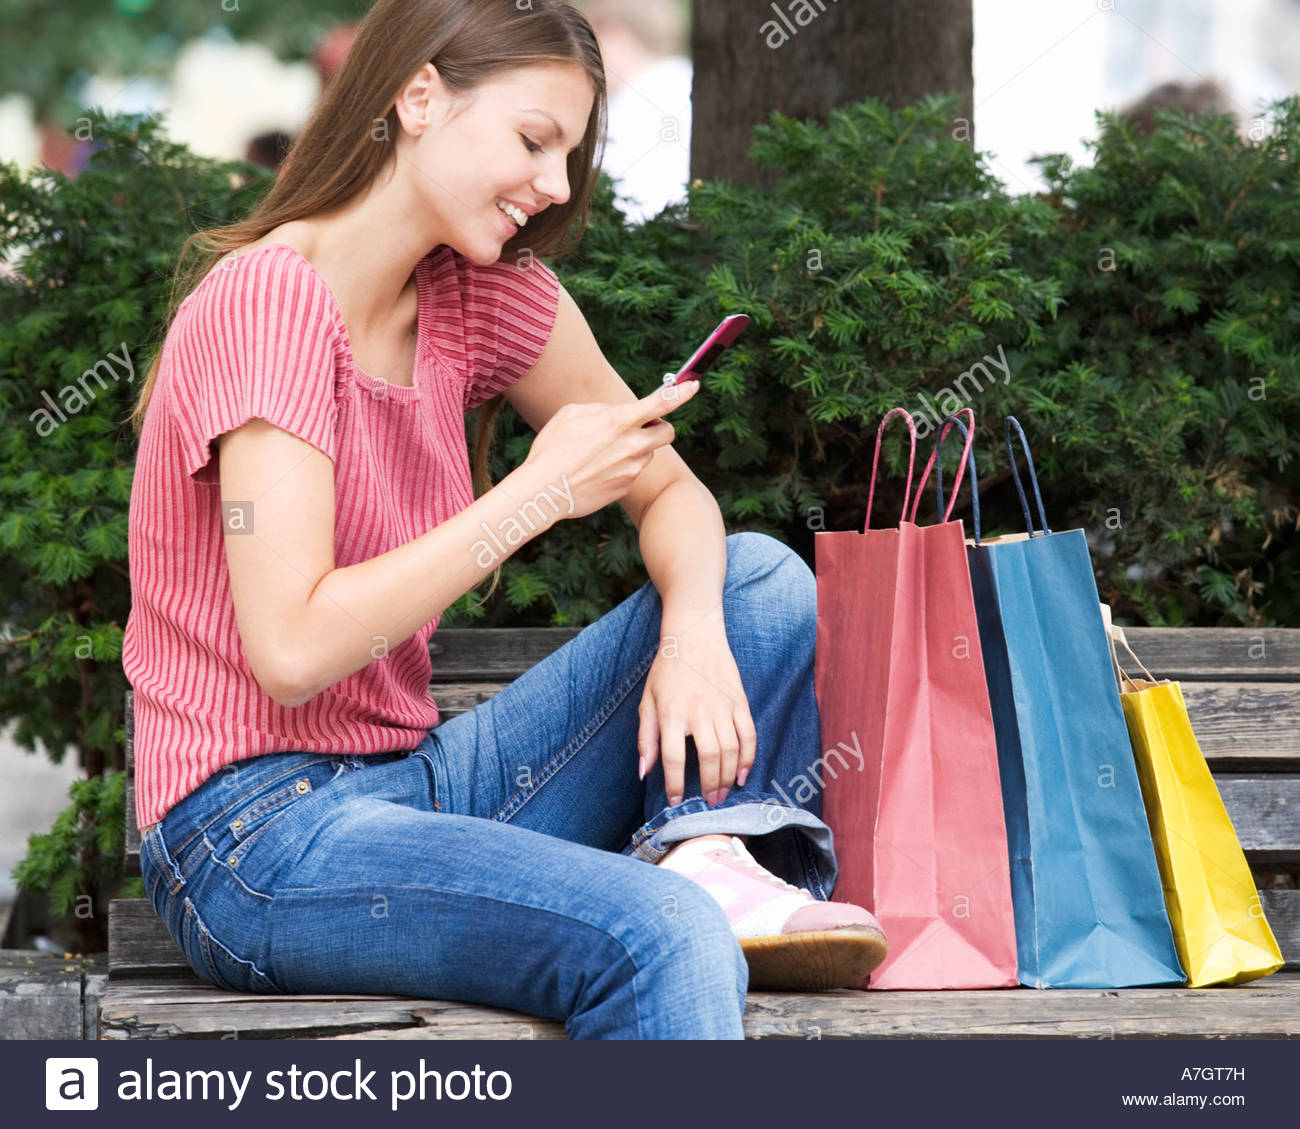 A young woman having a break from shopping - Stock Image